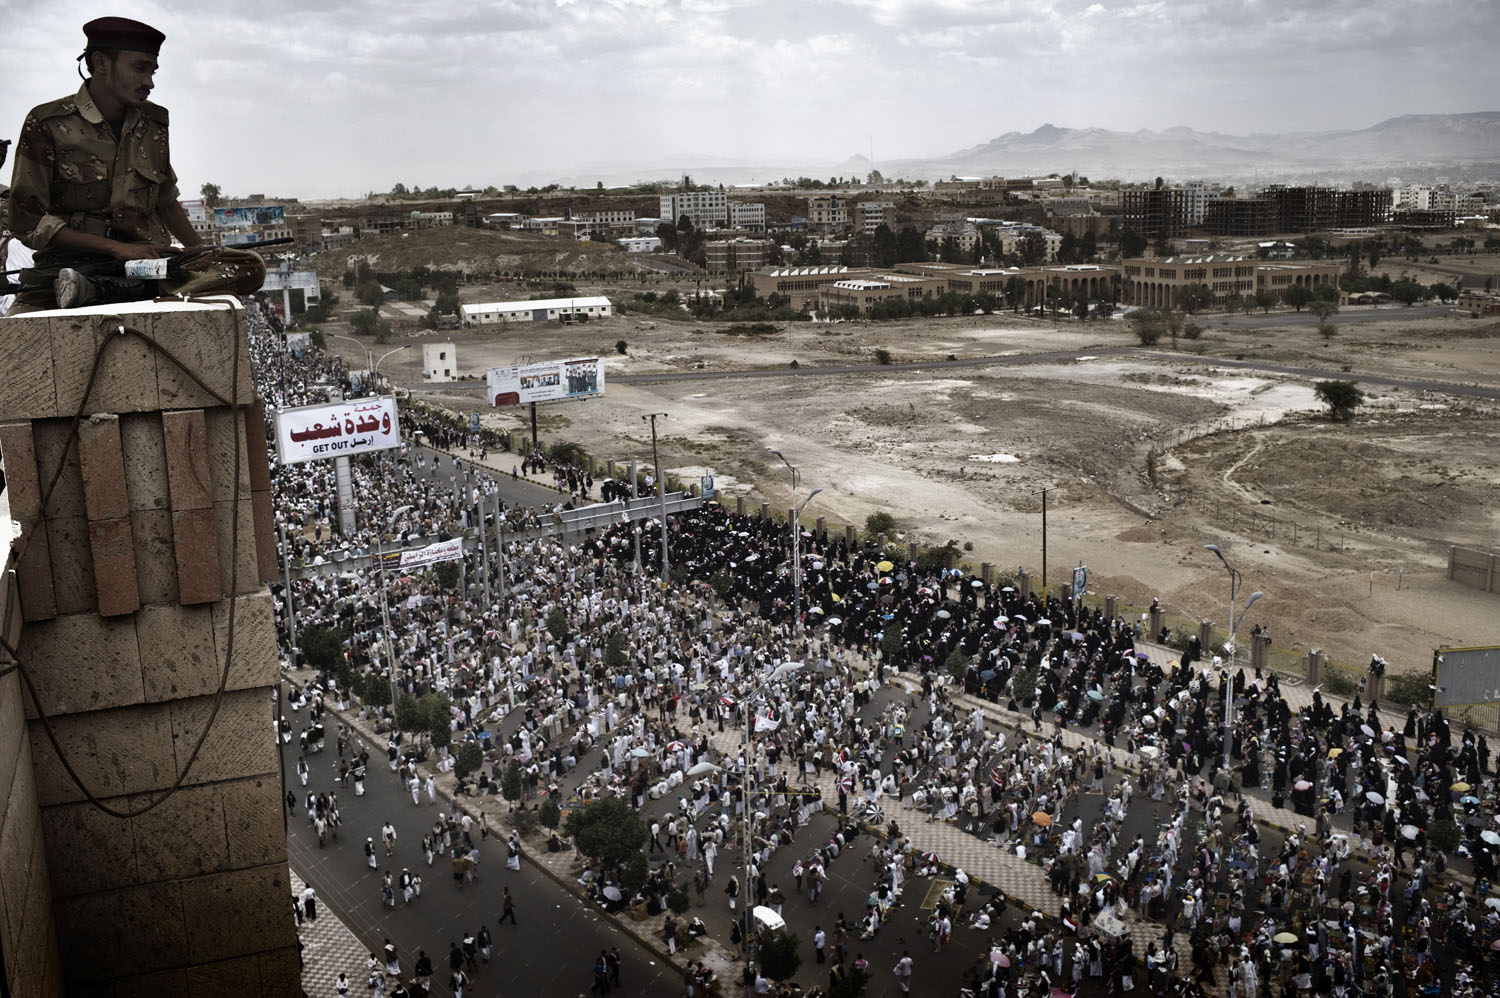 A defected soldier watches anti-government rally in Sana'a, demanding the ousting of Yemen's President Ali Abdullah Saleh, May 20, 2011.